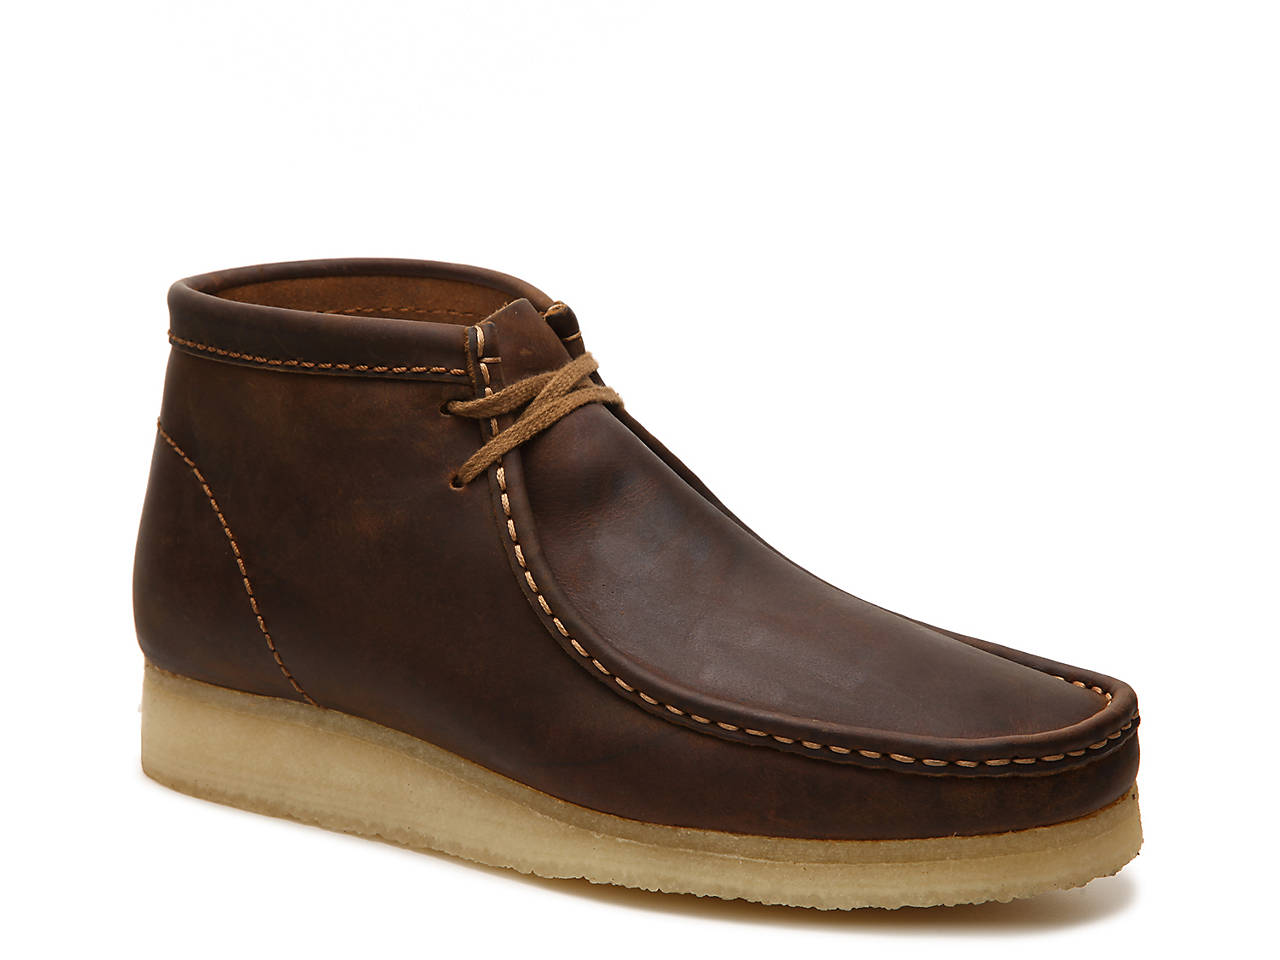 Wallabee Chukka Boot